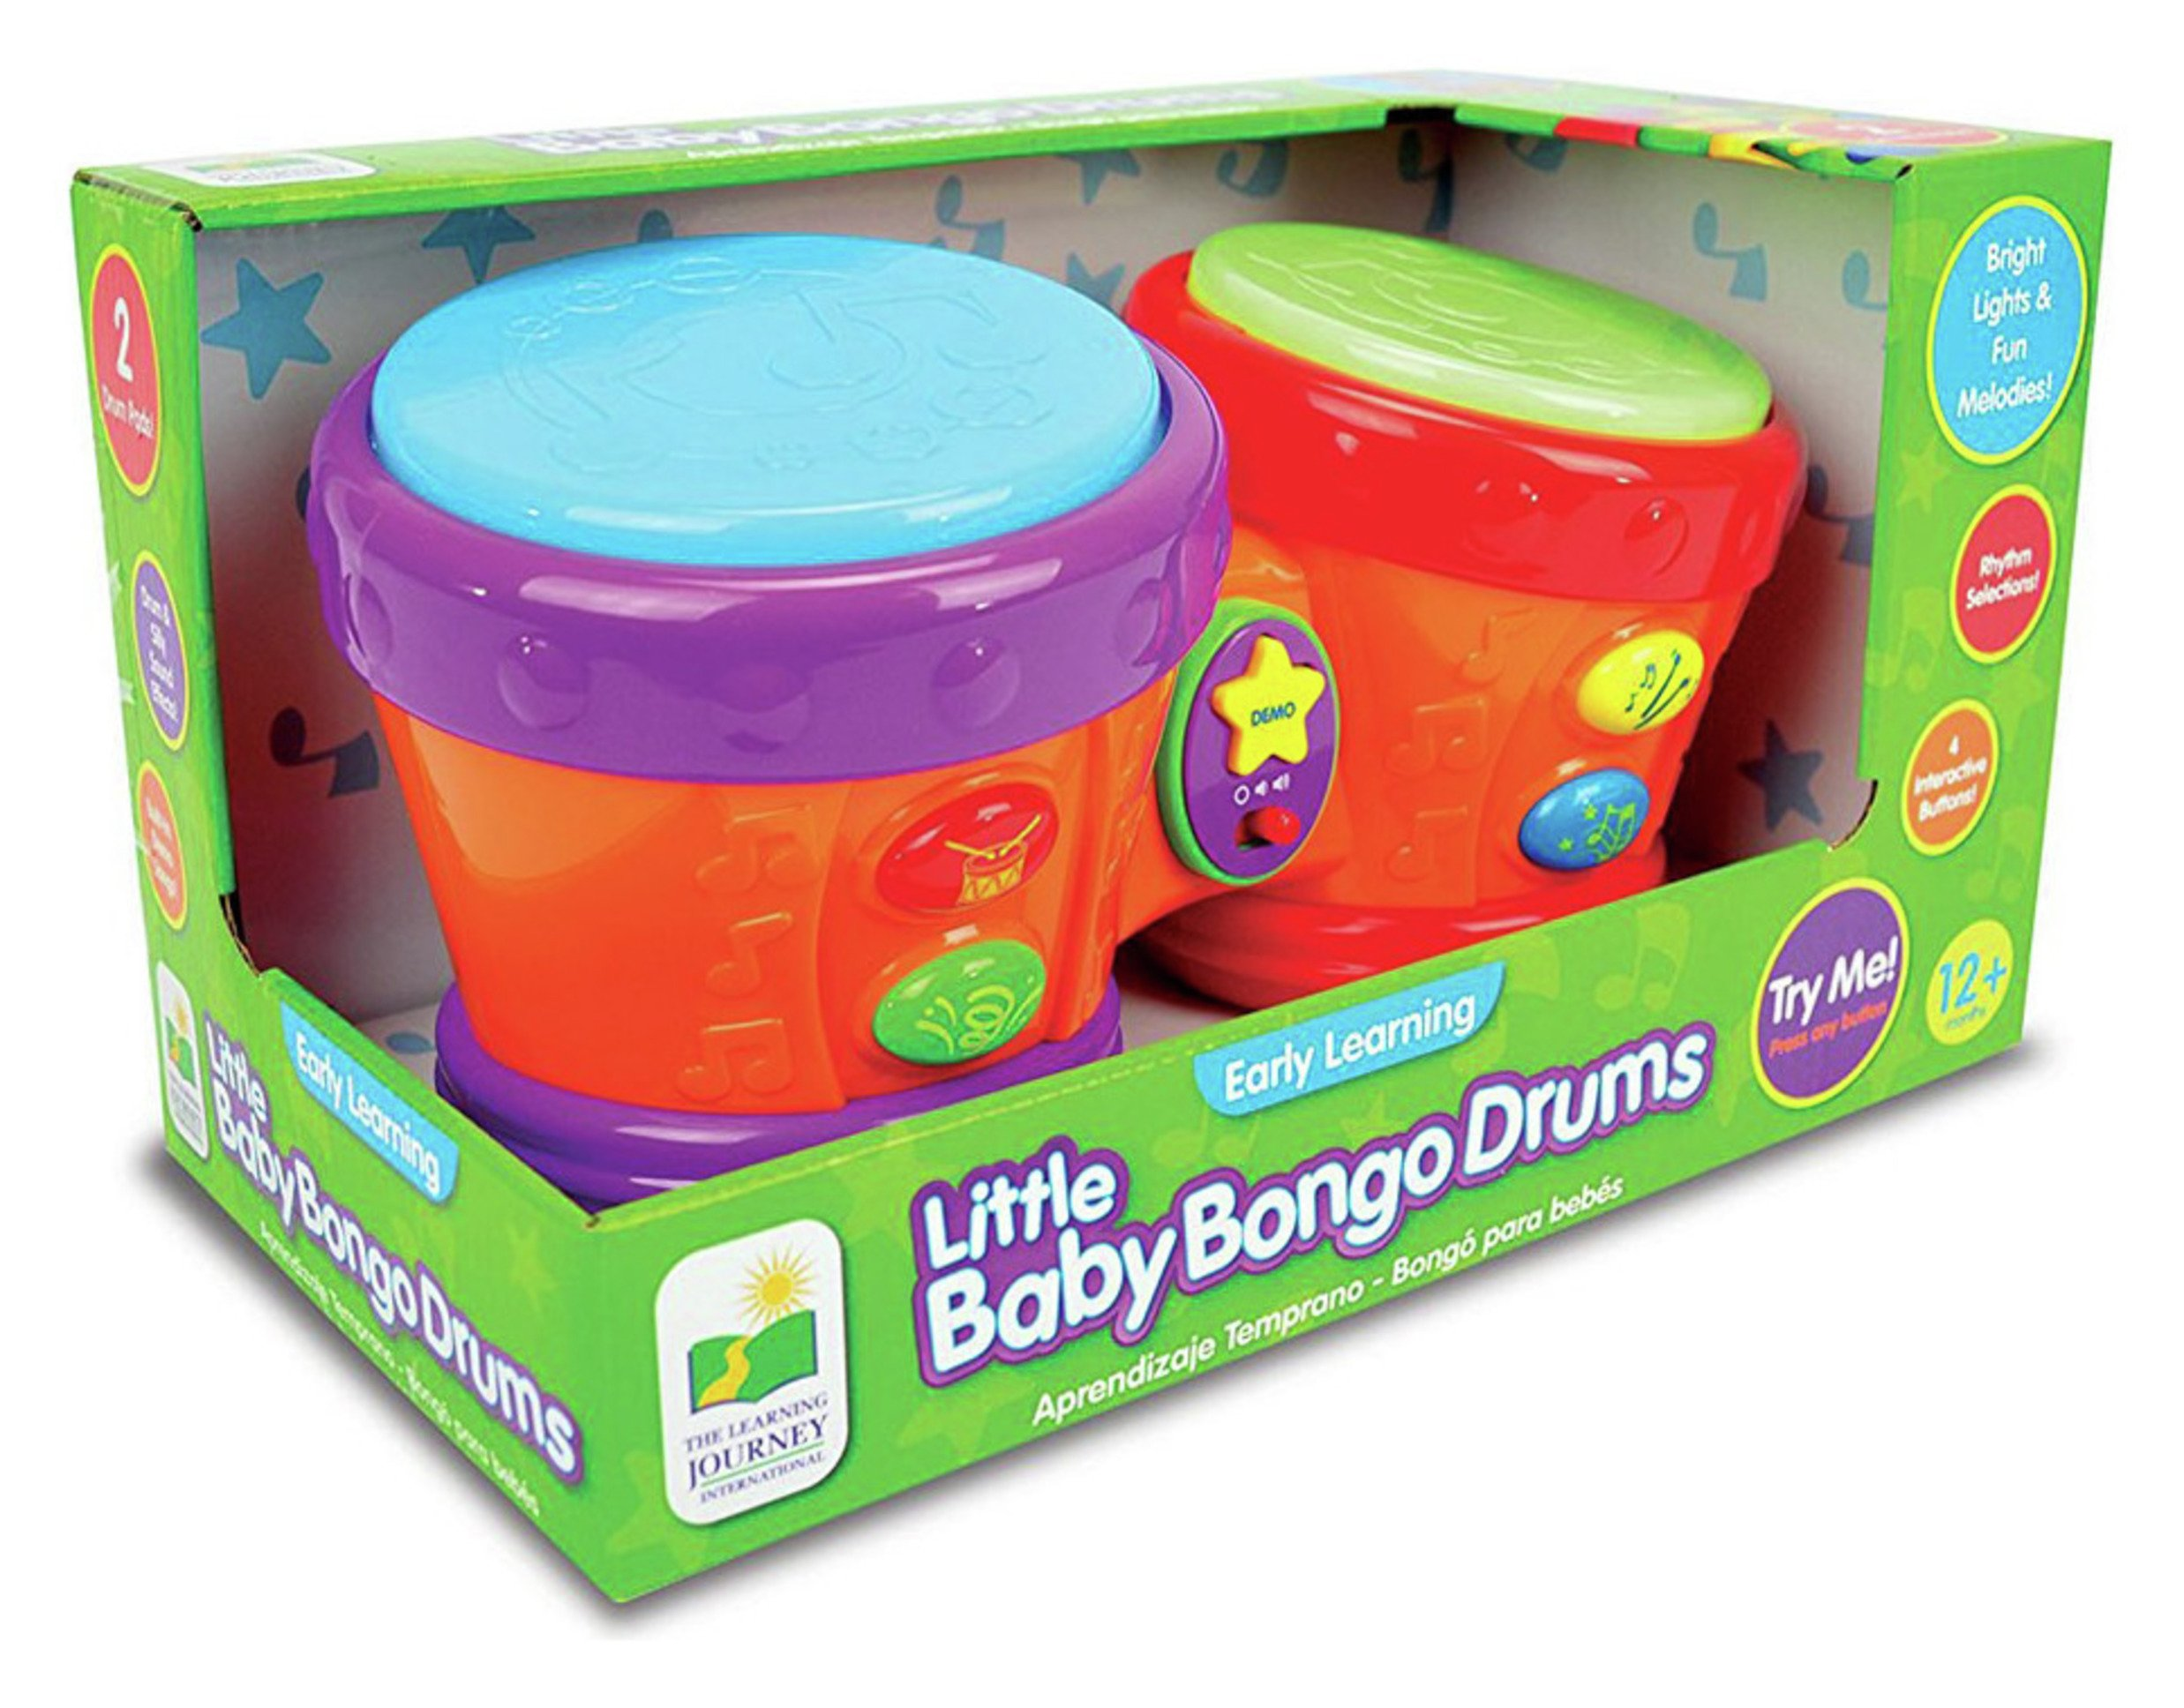 Image of Little Baby Bongo Drums